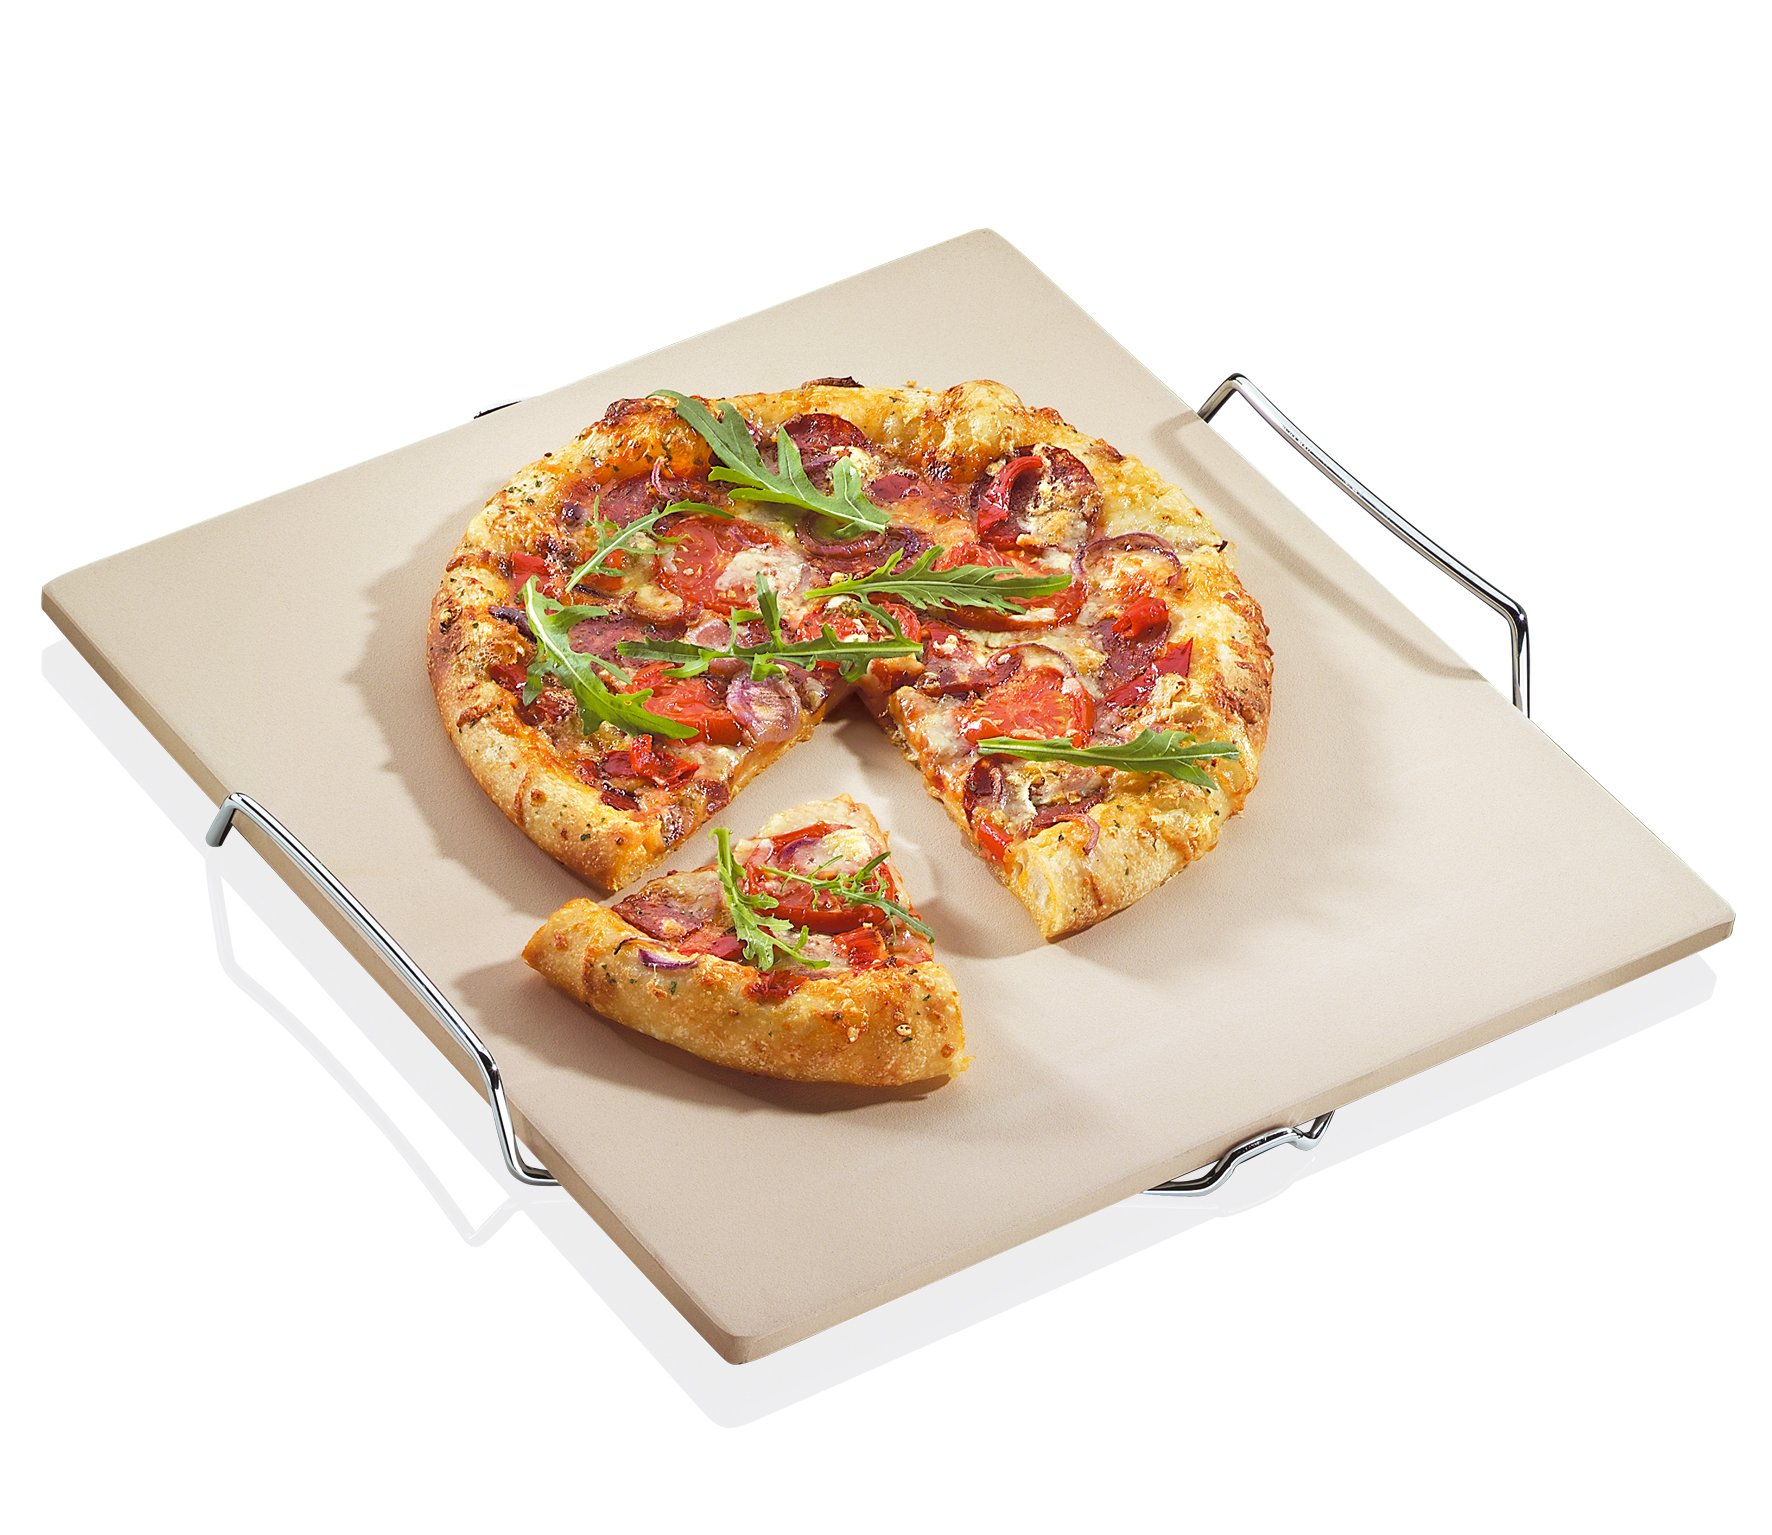 Kuchenprofi 15 by 14-Inch Pizza Stone with Stainless Steel Rack